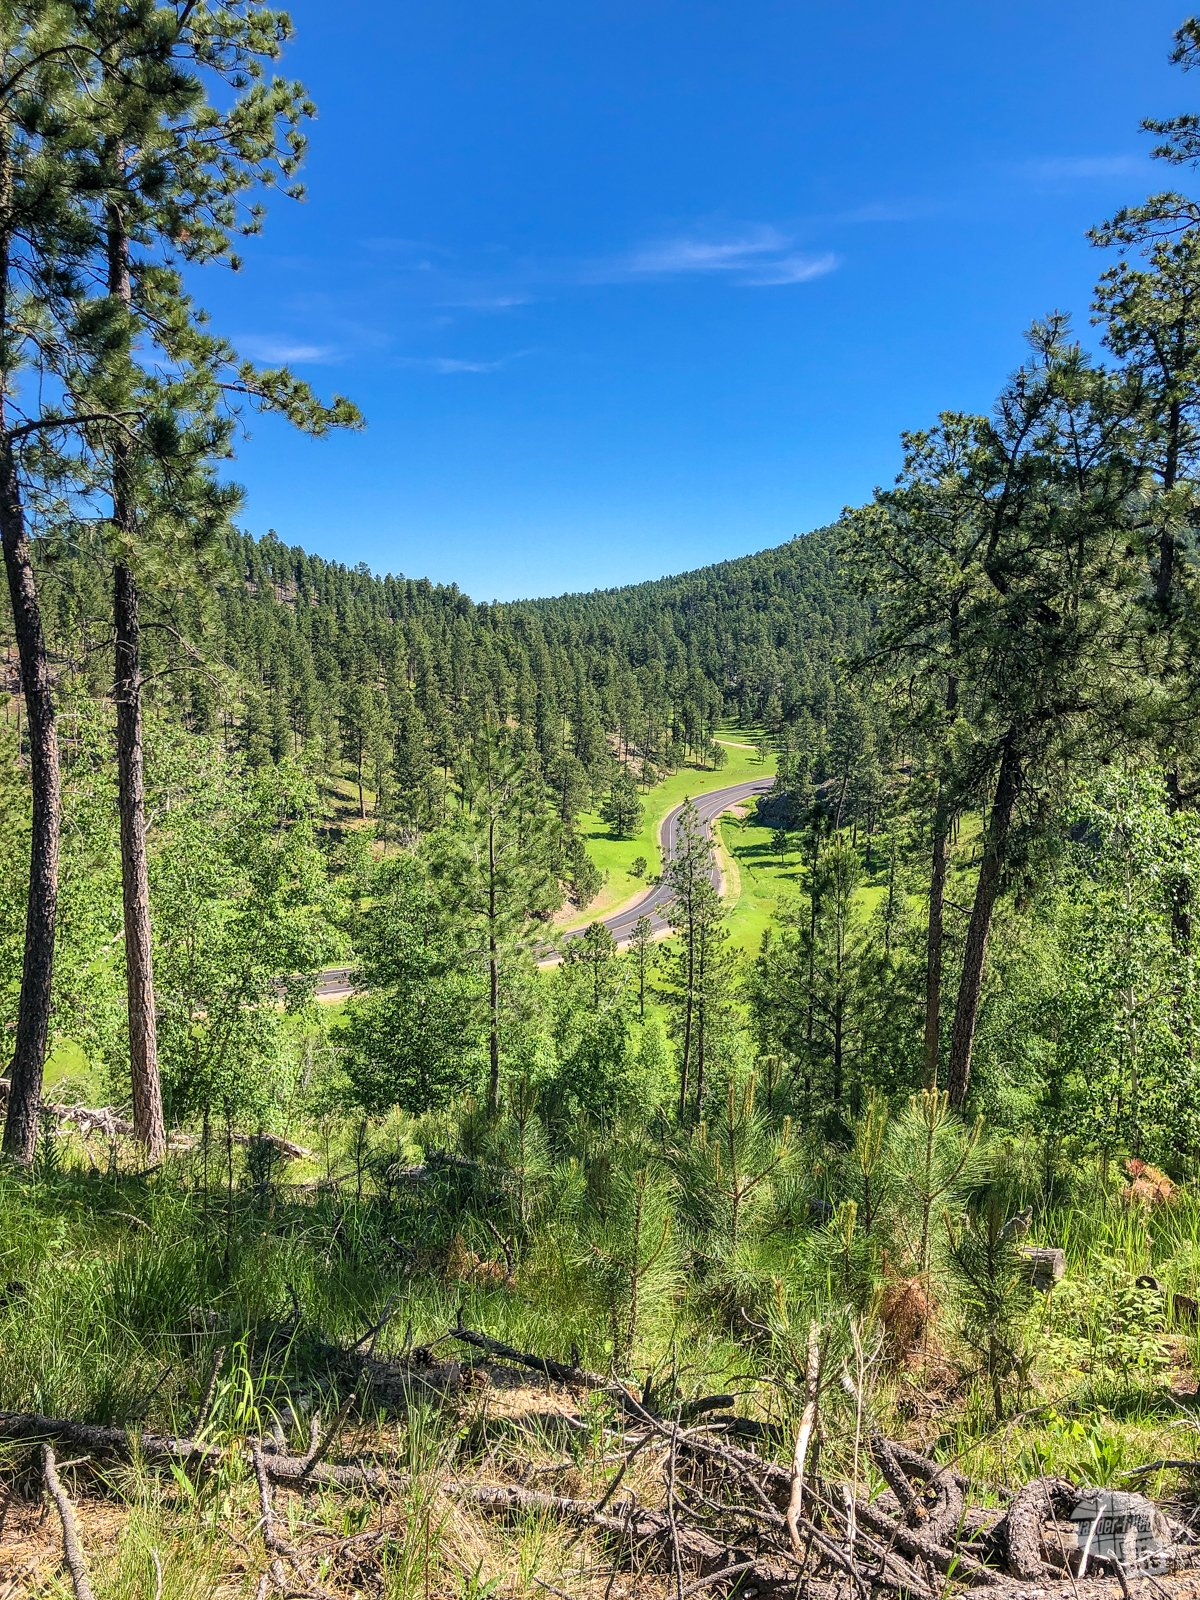 The road snaking through the north end of Custer State Park.